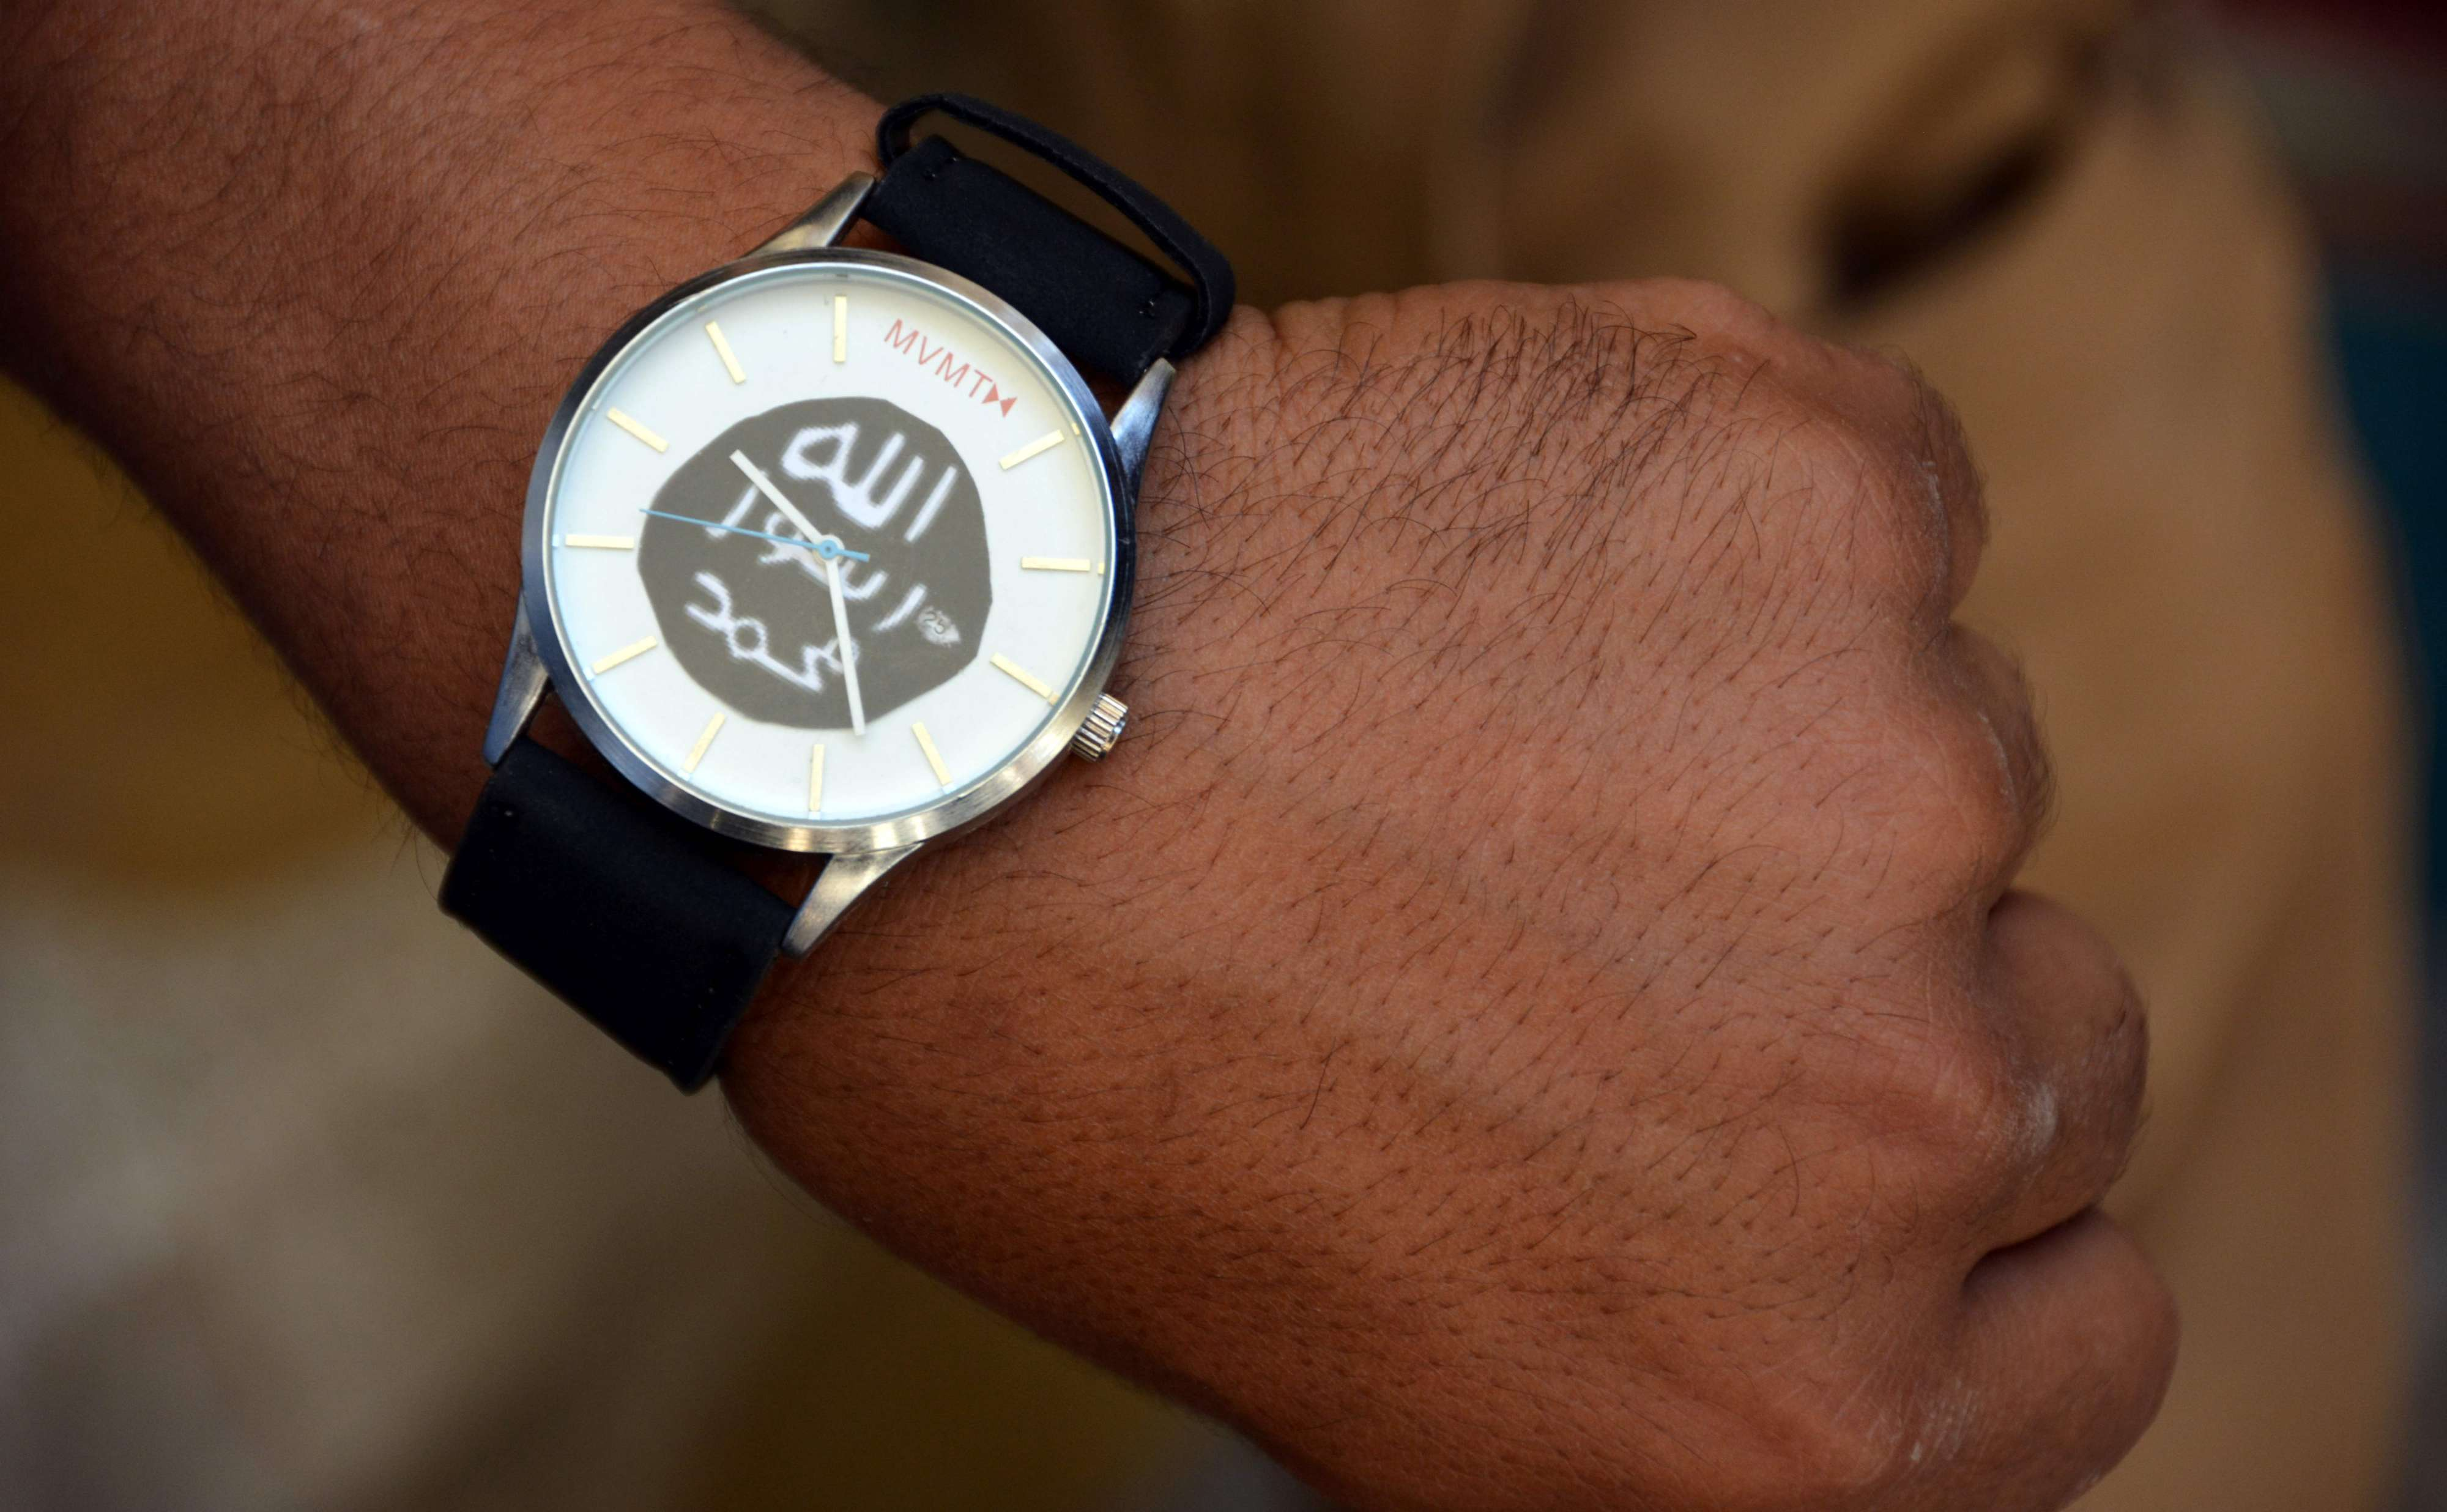 A watch that belonged to a former Islamic State (ISIS) fighter, bearing the group's logo. (AFP)